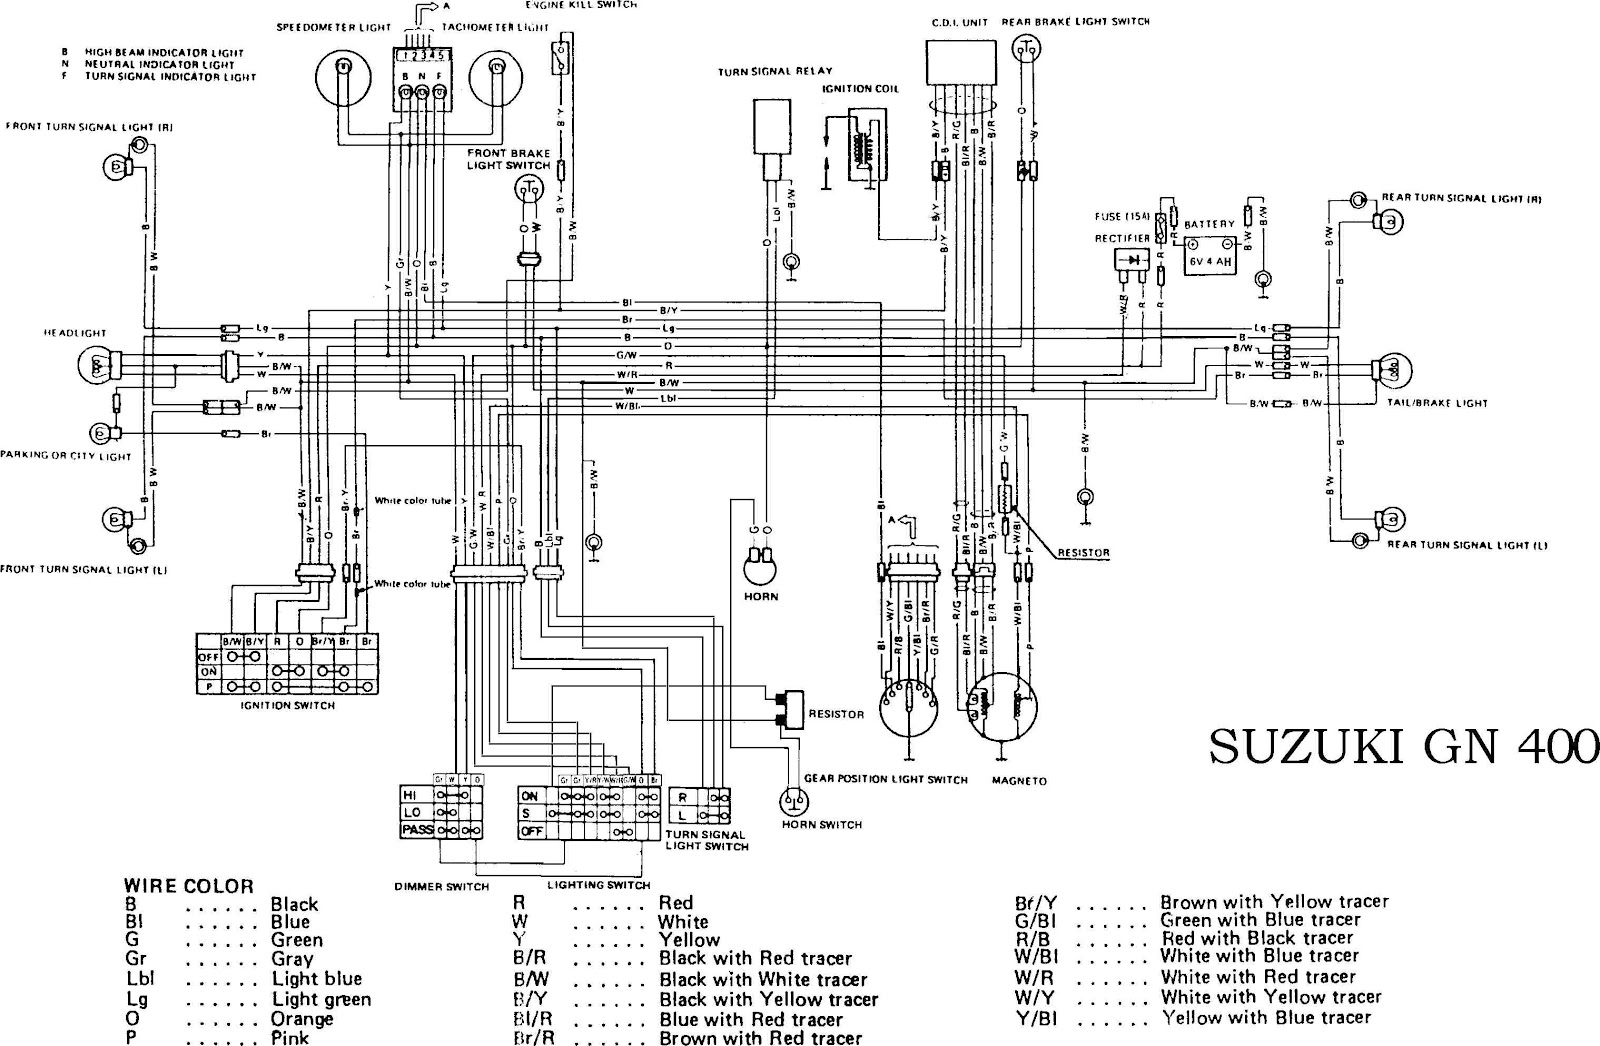 tc185 suzuki wiring diagram suzuki gn400 motorcycle complete electrical wiring diagram ...